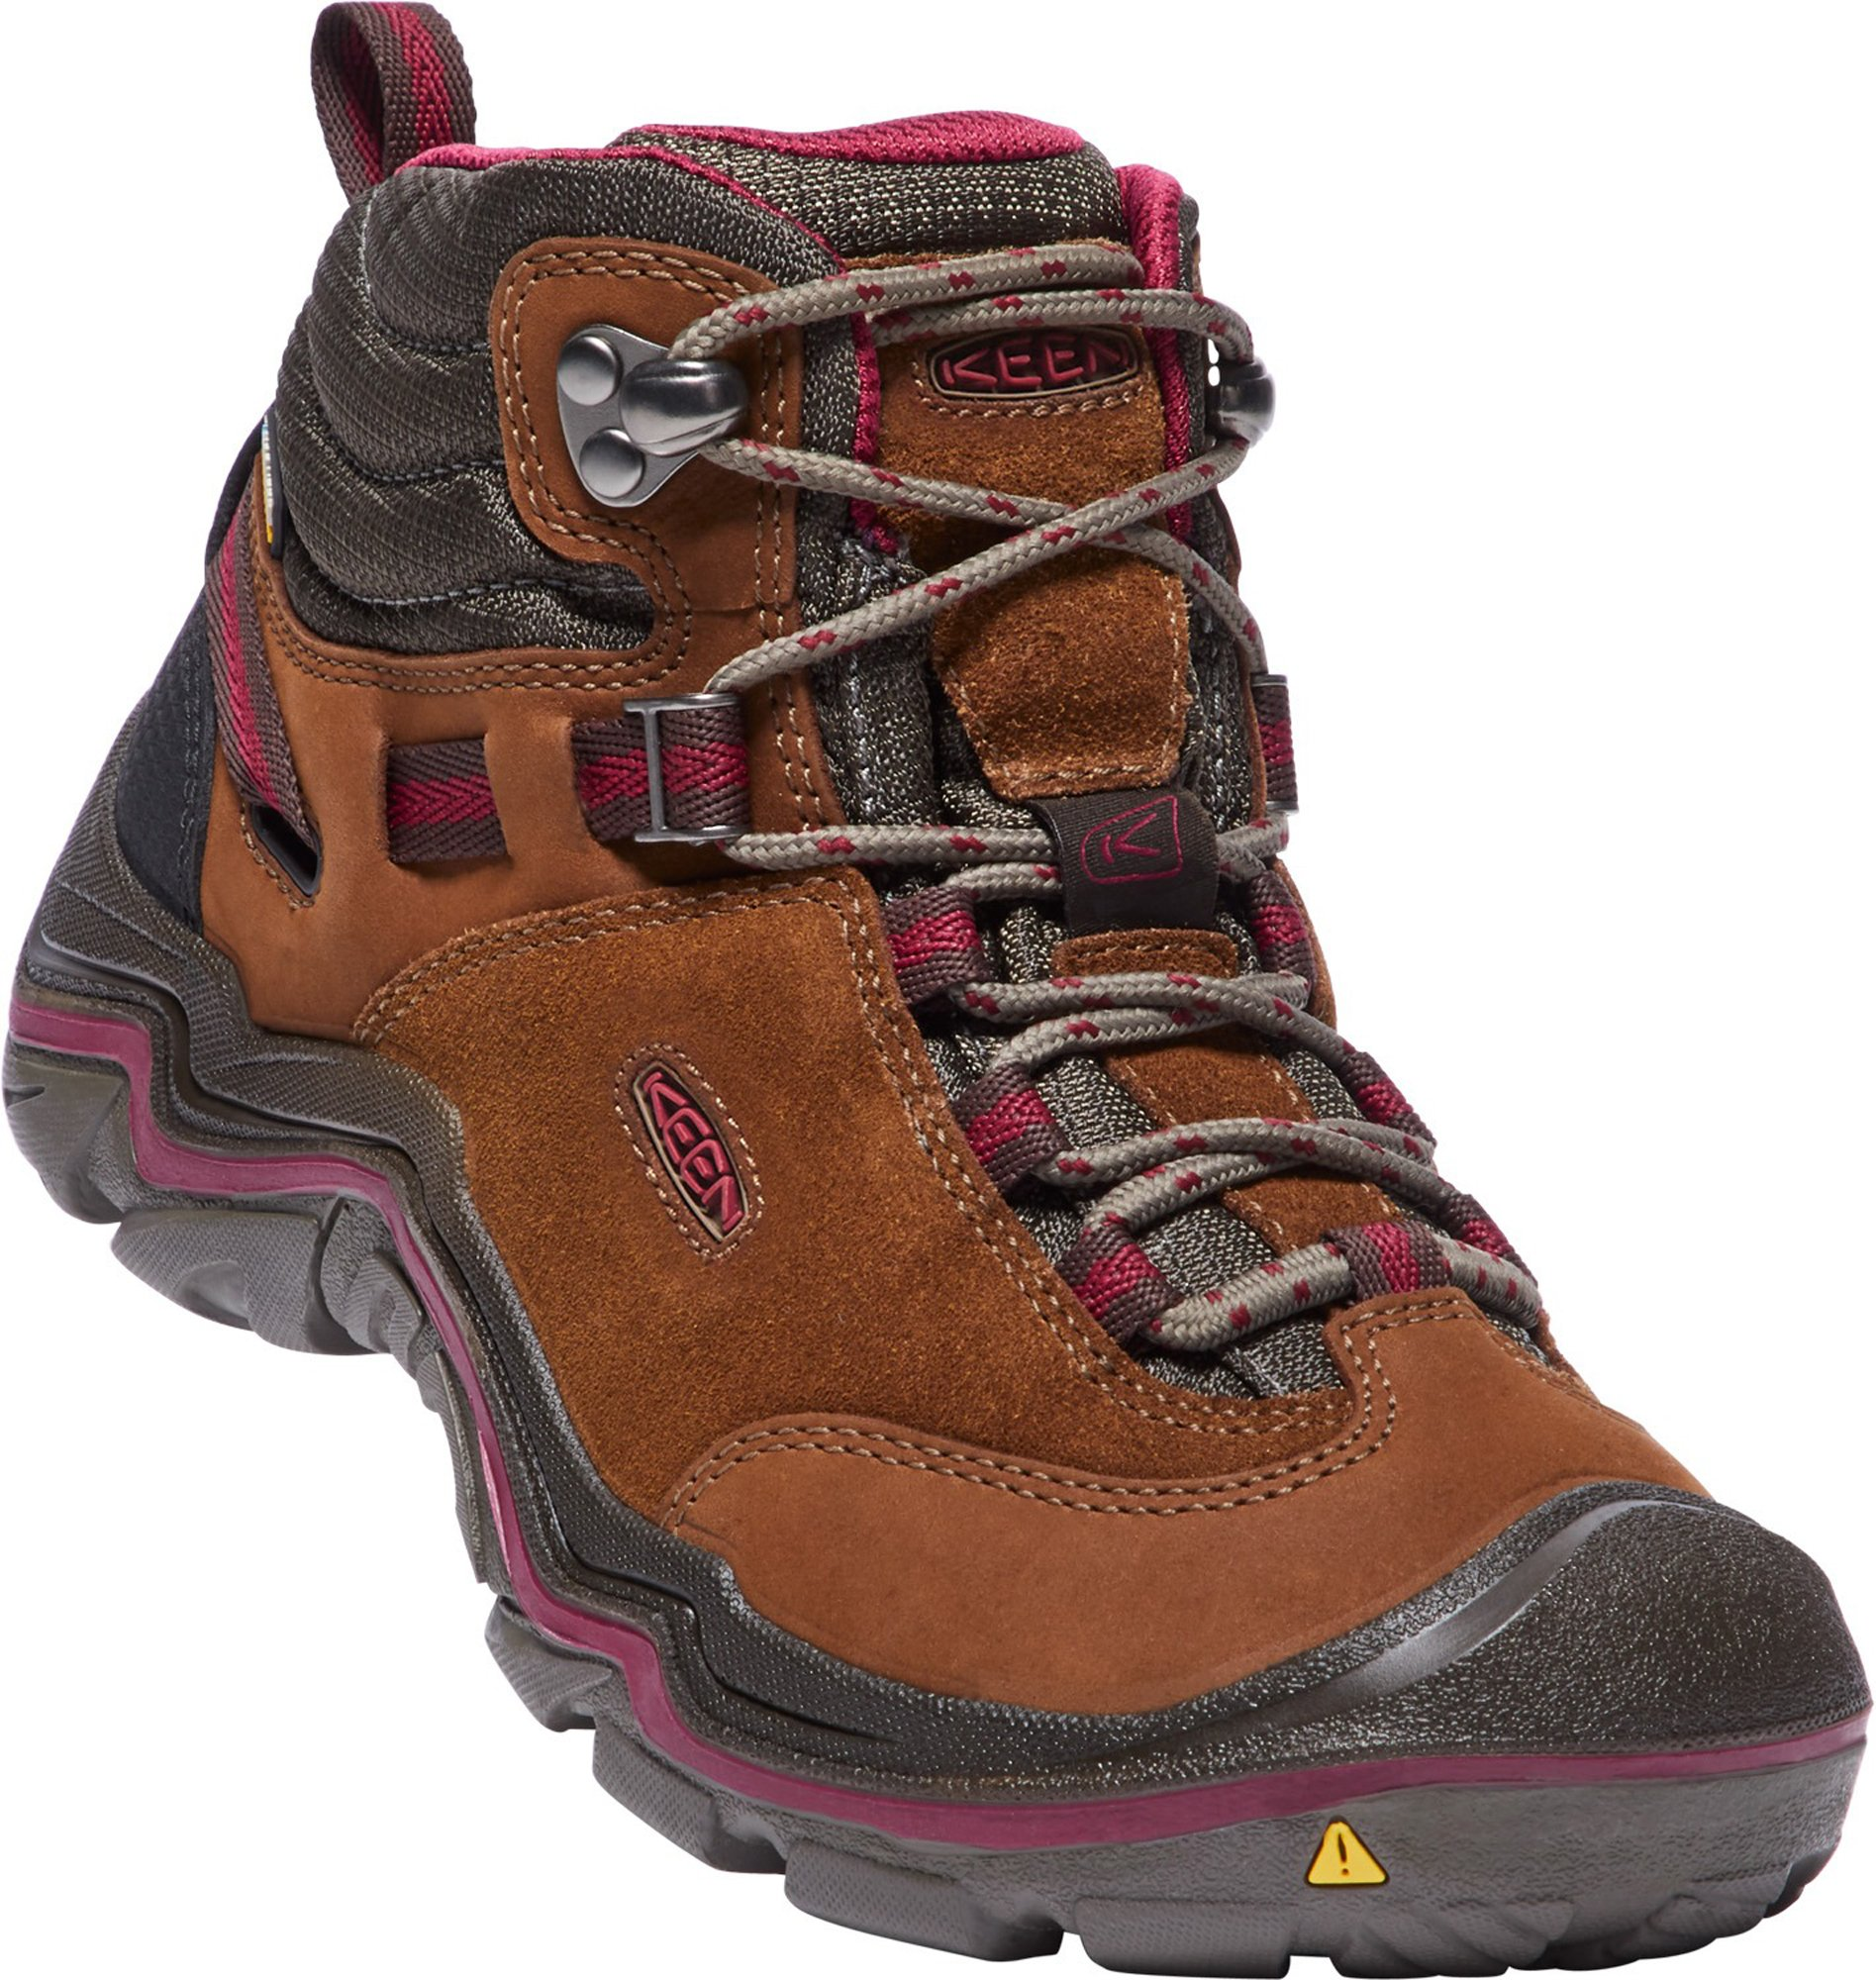 KEEN Women's Laurel Mid WP-w Trail Runner, Monks Robe/Rhododendron, 9 M US by KEEN (Image #6)